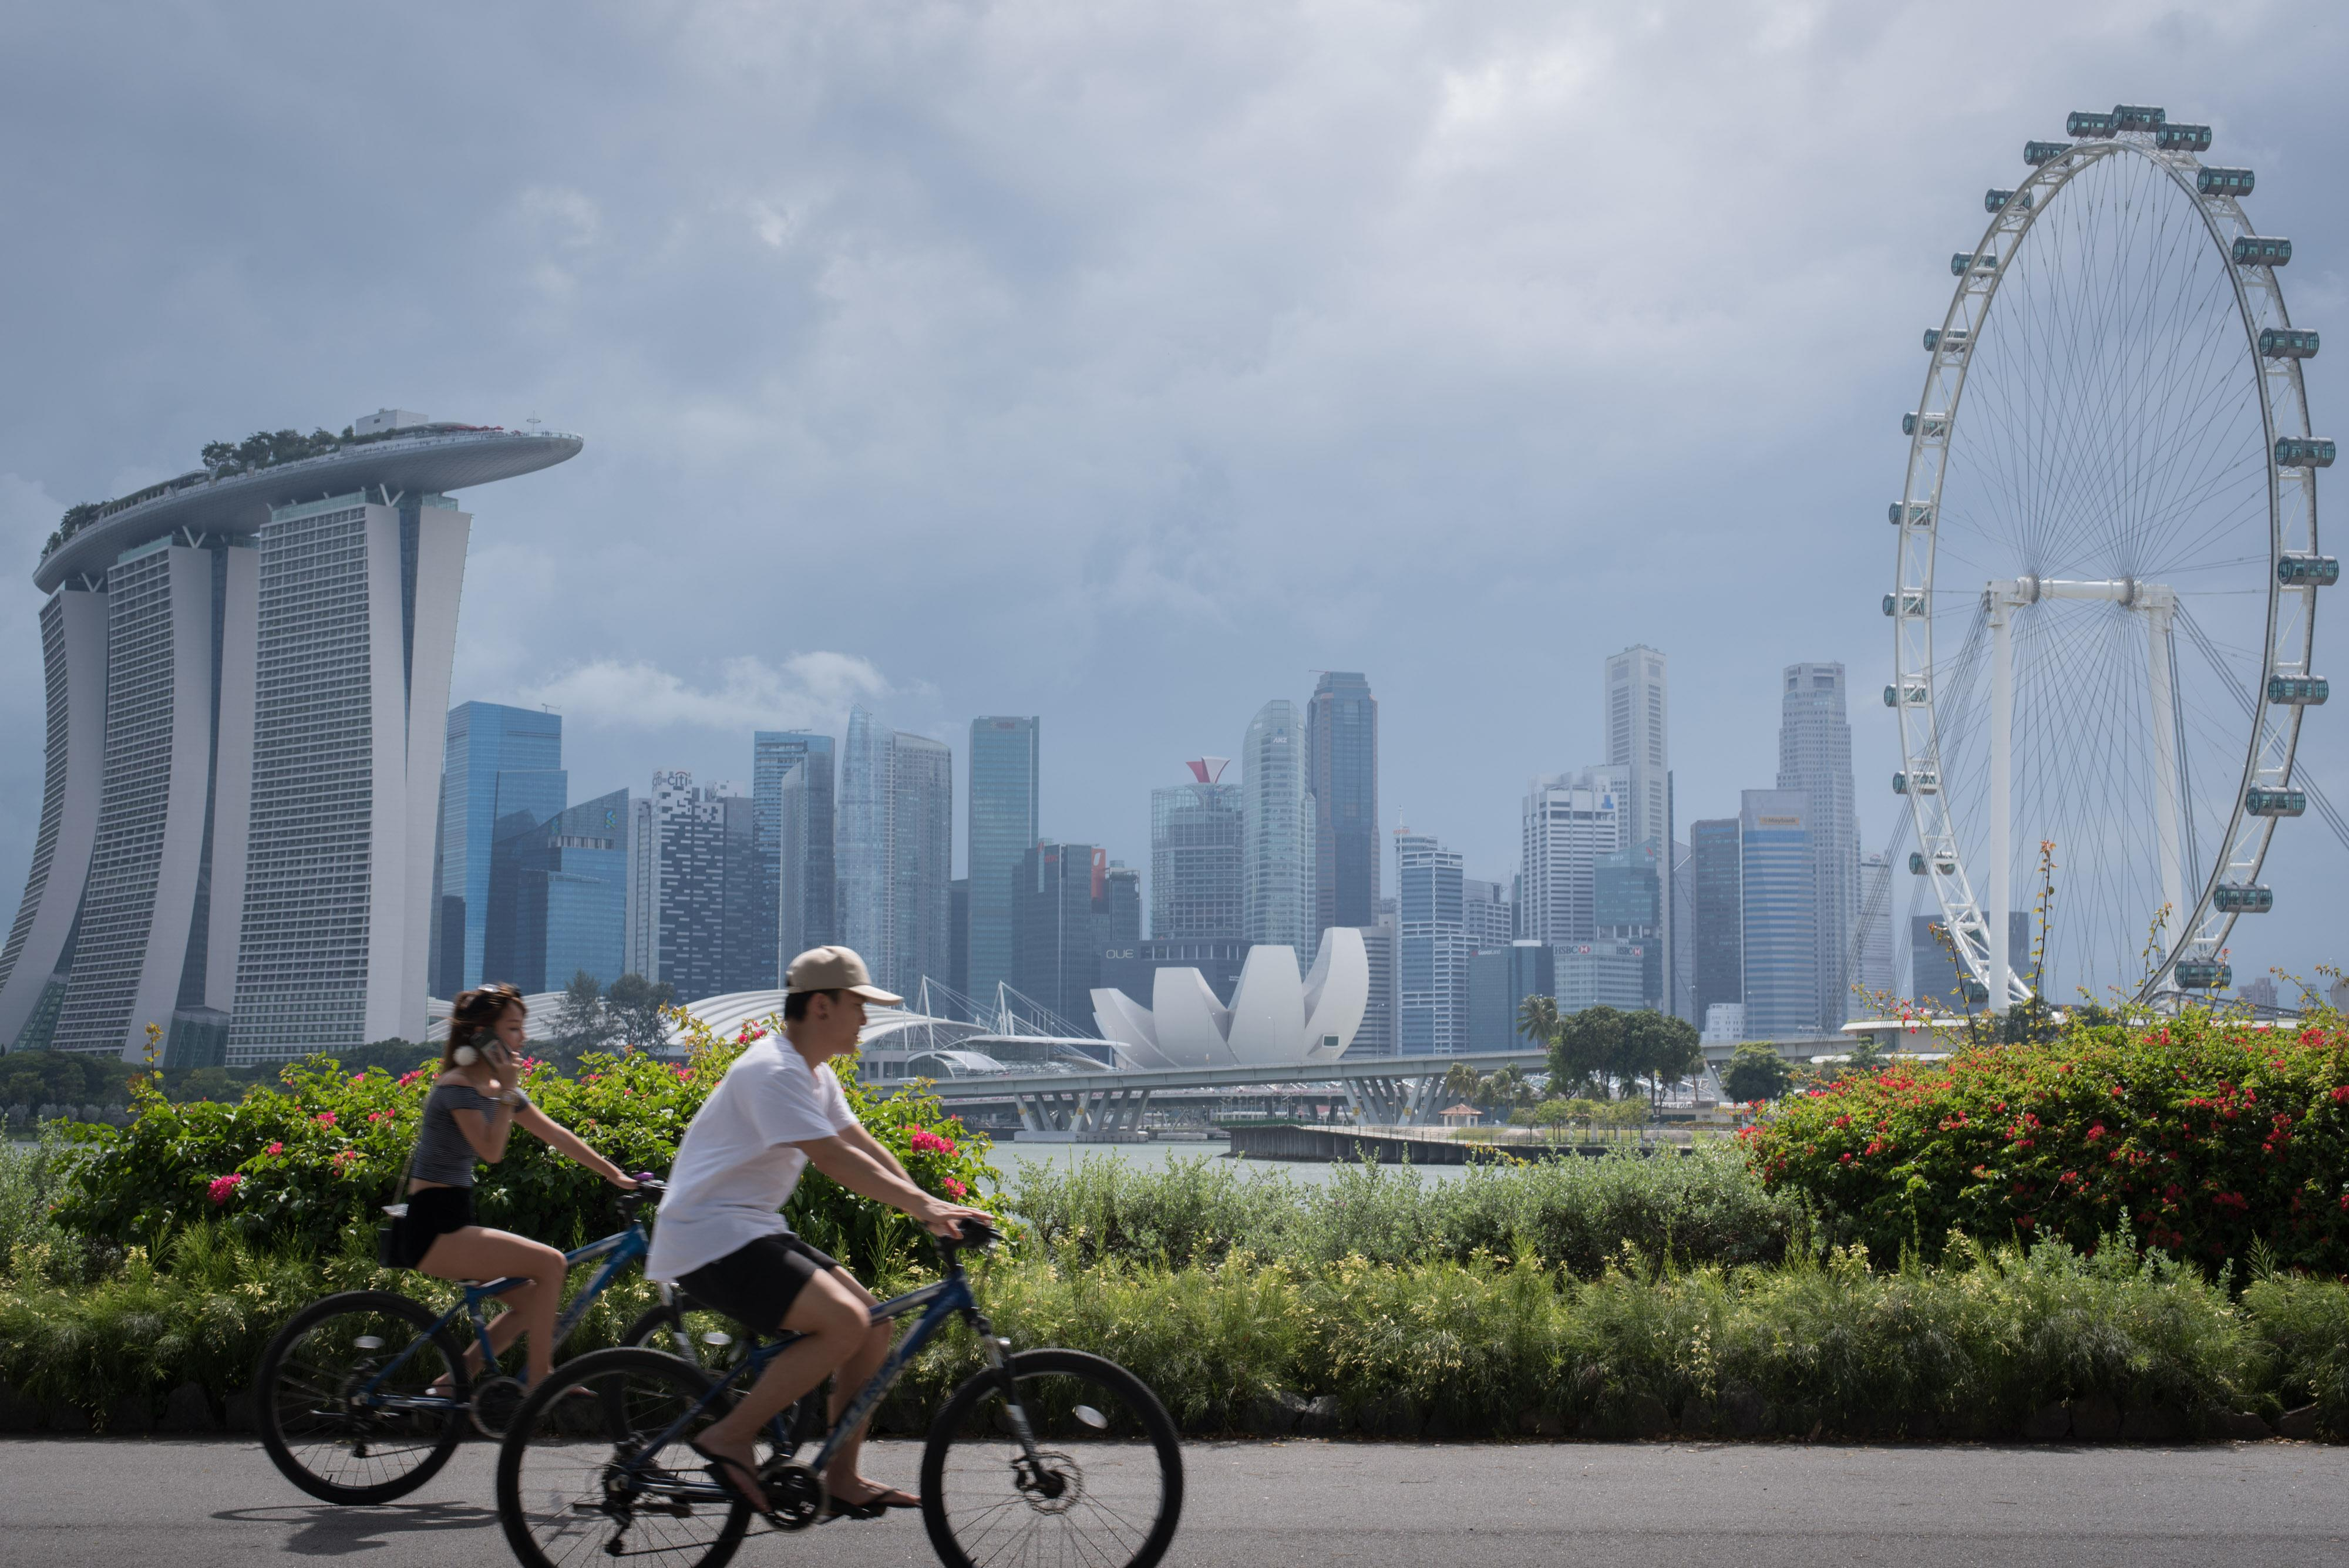 Nearly 1 in 5 young Singaporeans want to emigrate: survey